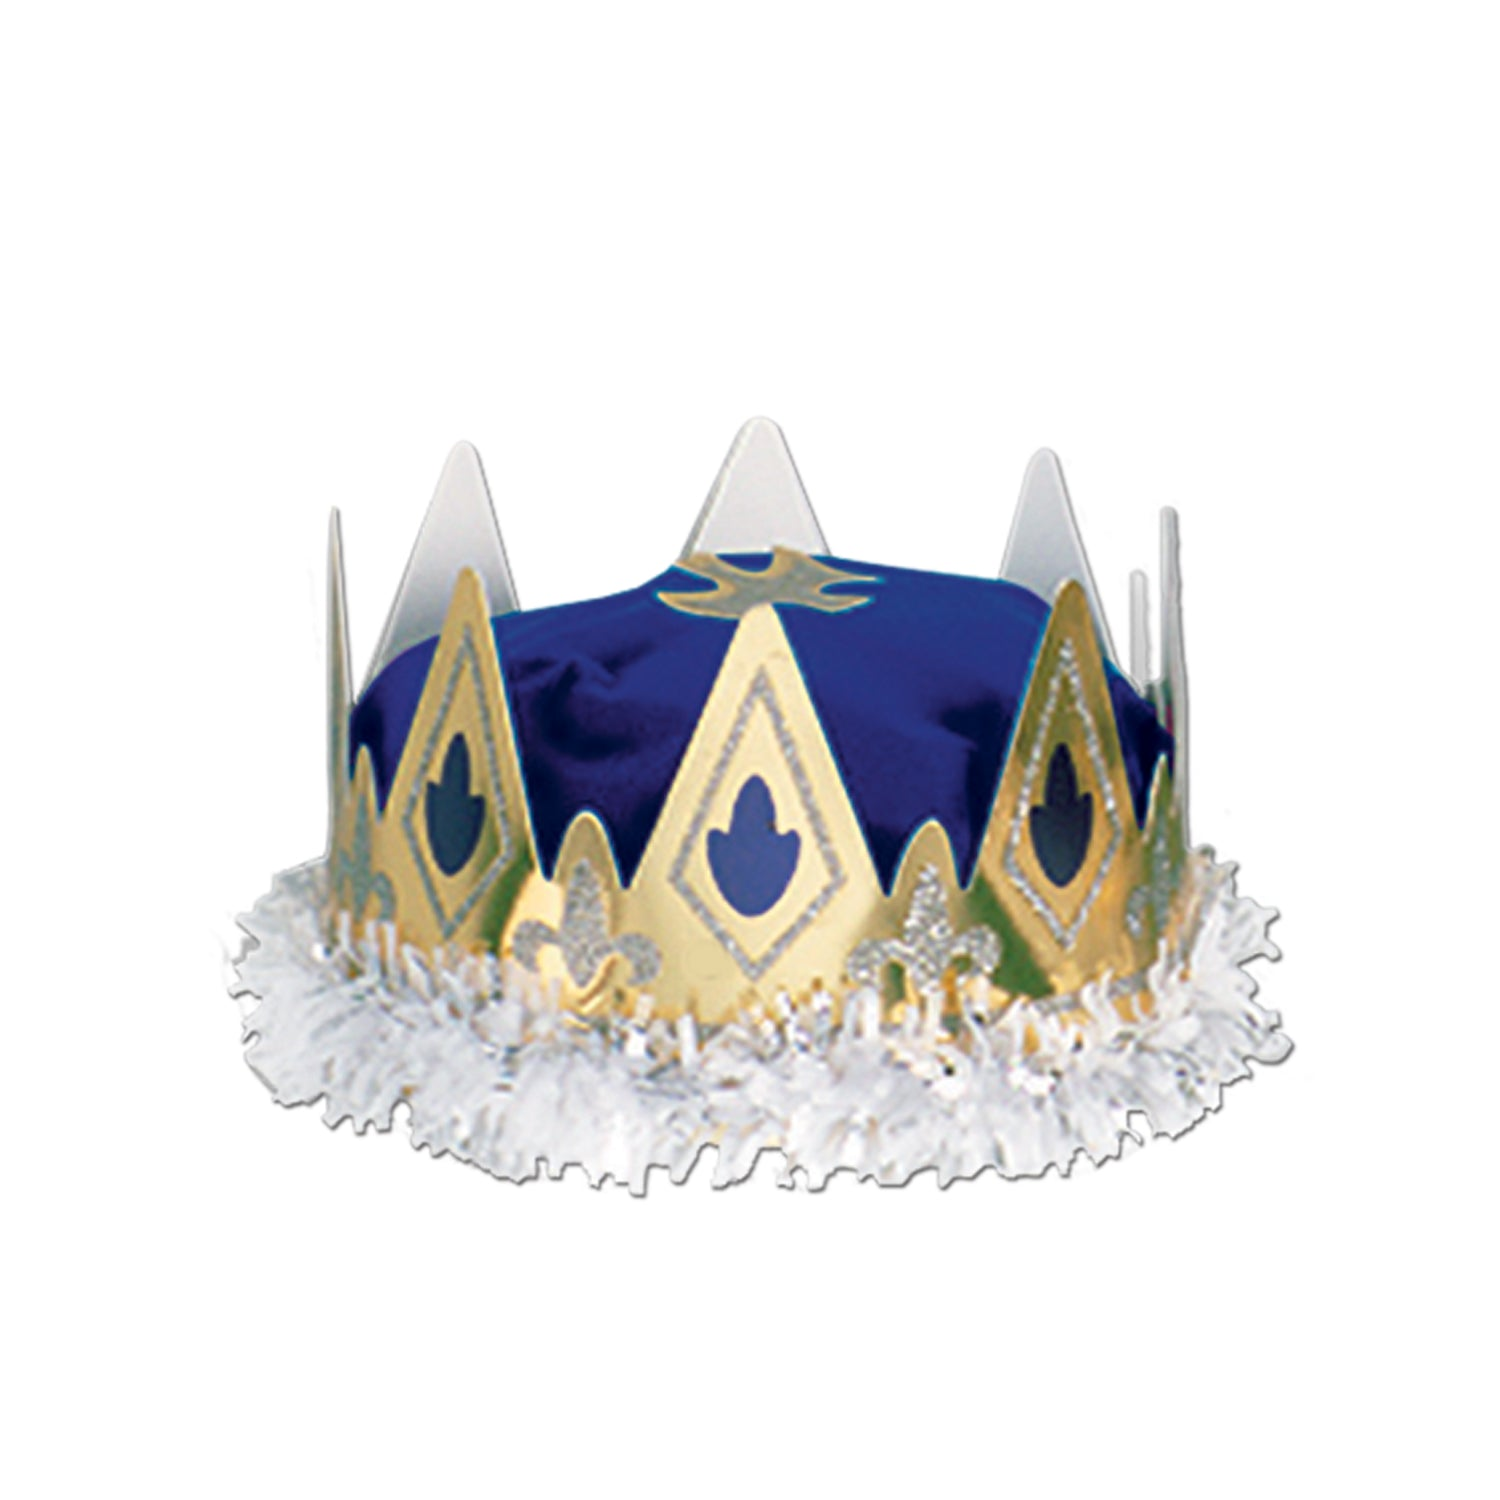 d52380c7211 12 Case) Beistle Medieval Party Royal Queen s Crown blue - Bulk ...